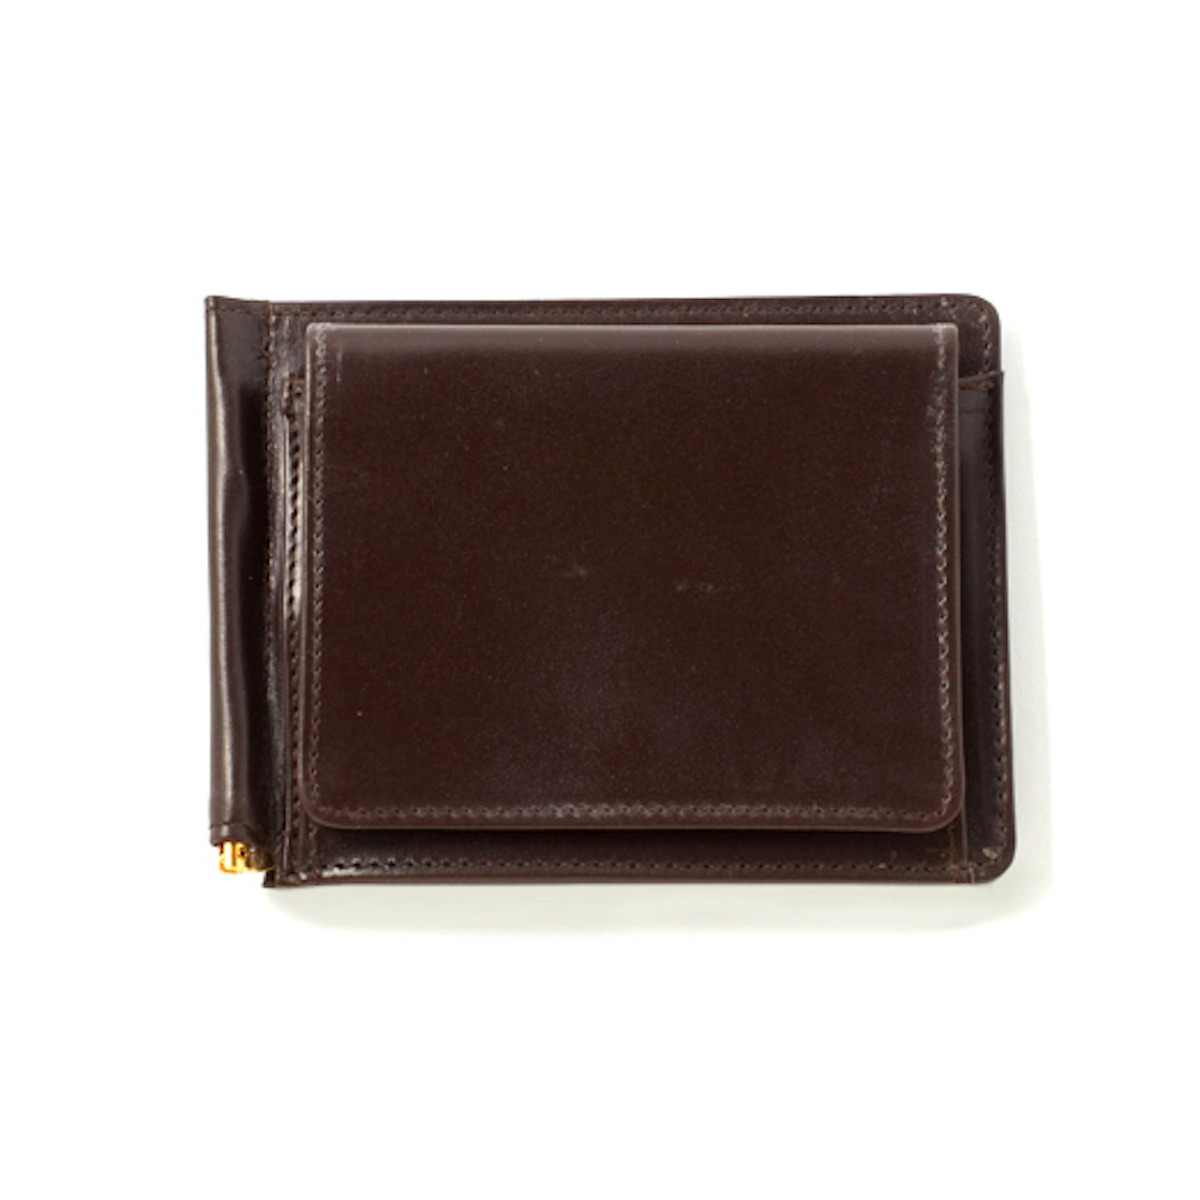 GLENROYAL / MONEY CLIP WITH COIN POCKET -CIGAR